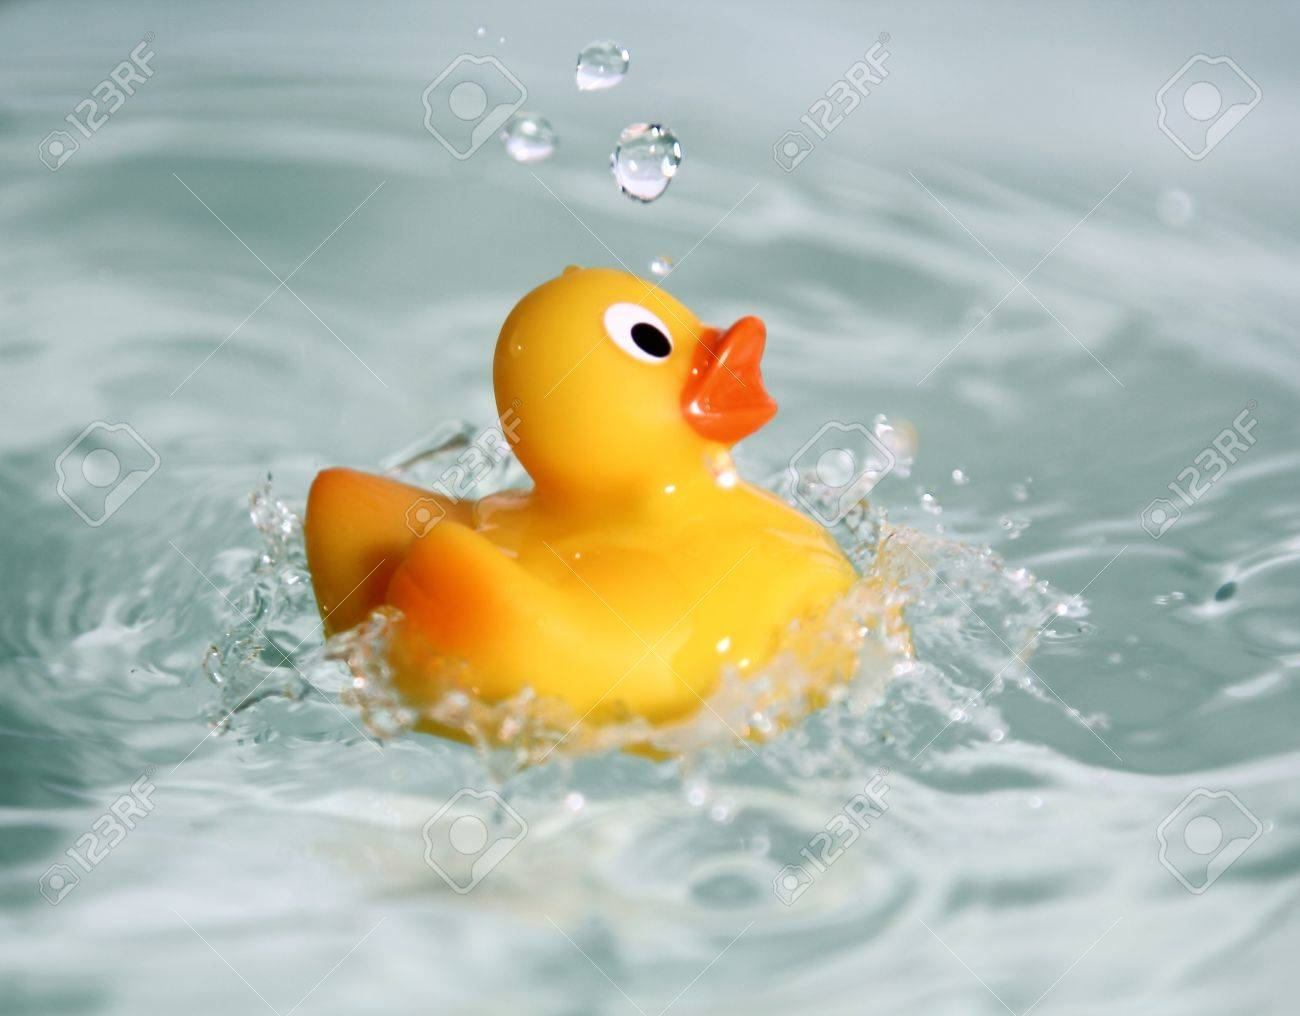 yellow rubber toy duck swimming in water Stock Photo - 10105690